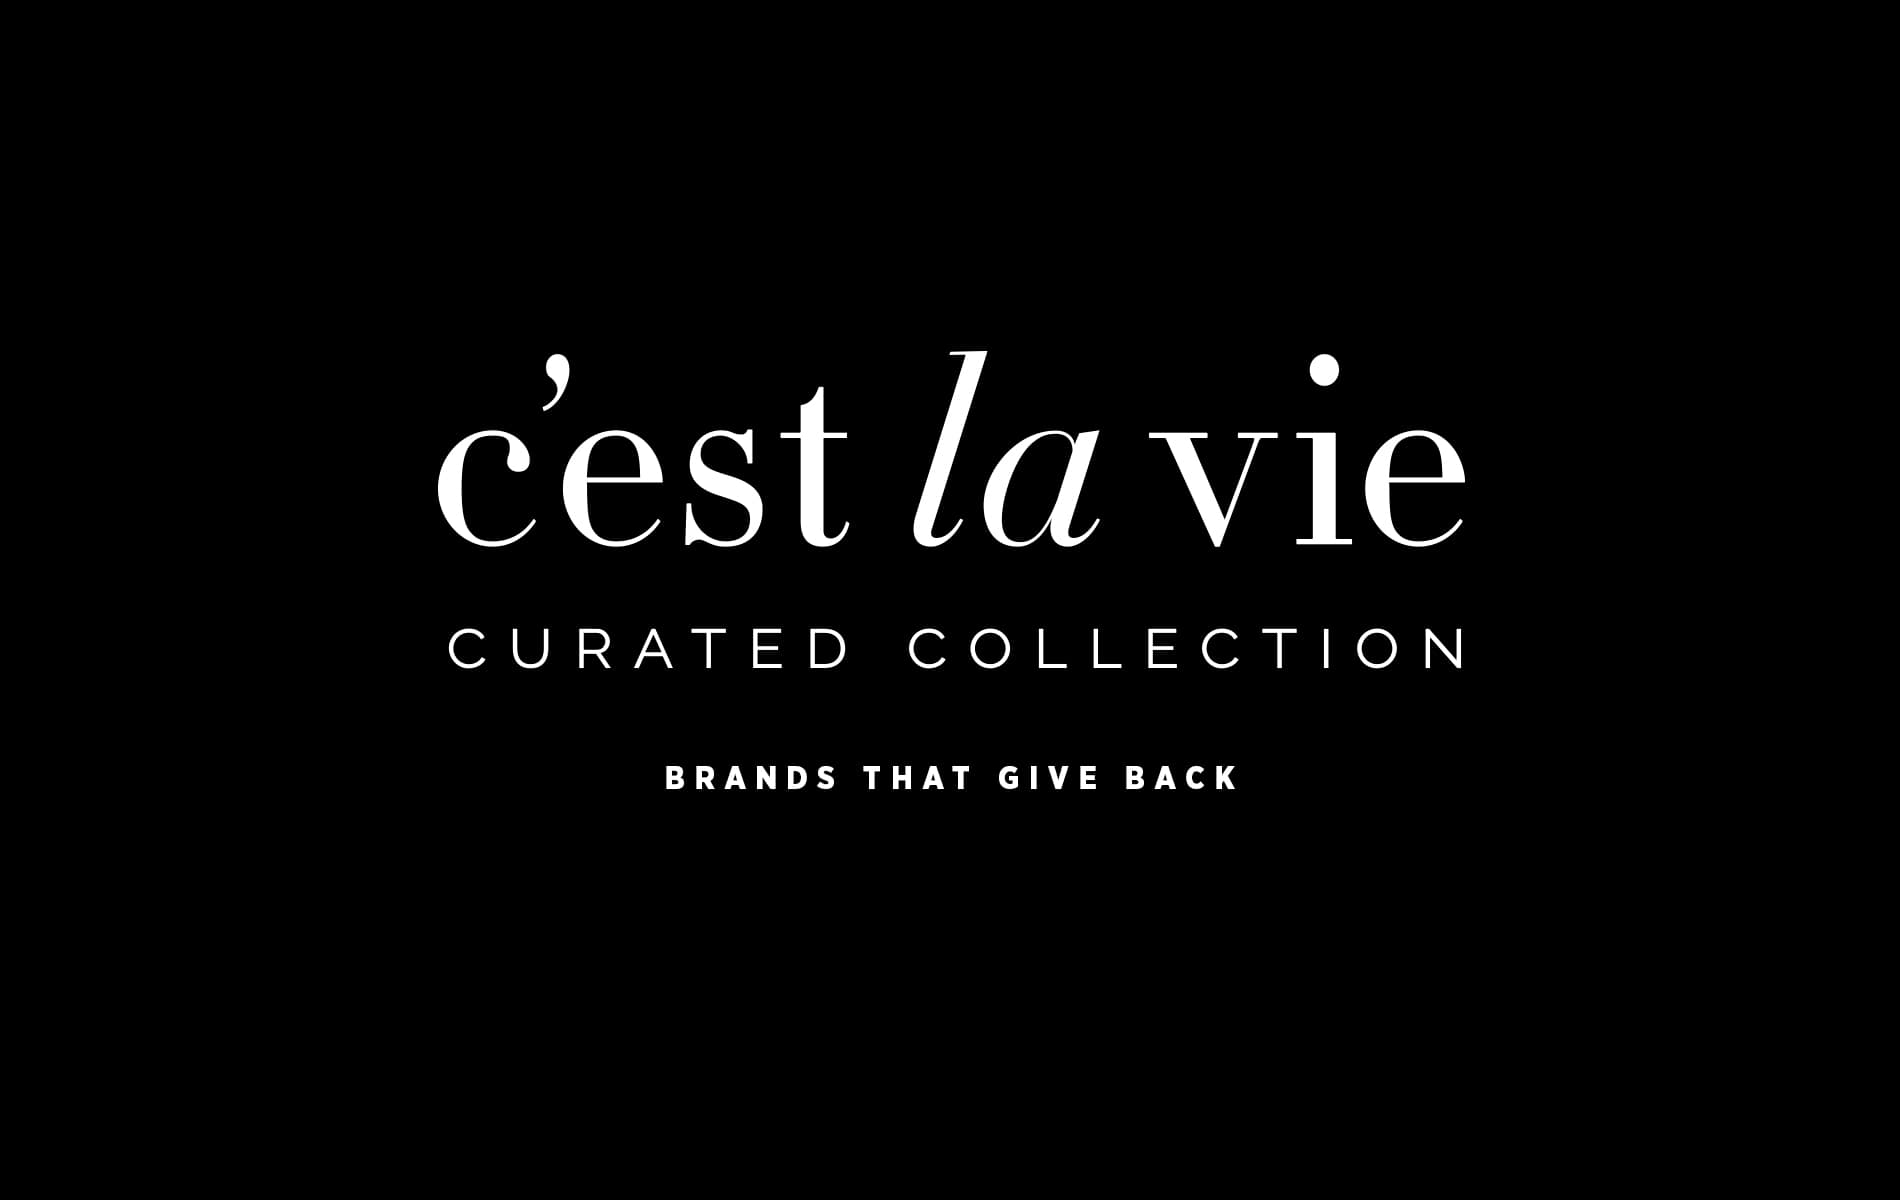 VIE Magazine C'est la VIE Curated Collection November 2019 Brands That Give Back